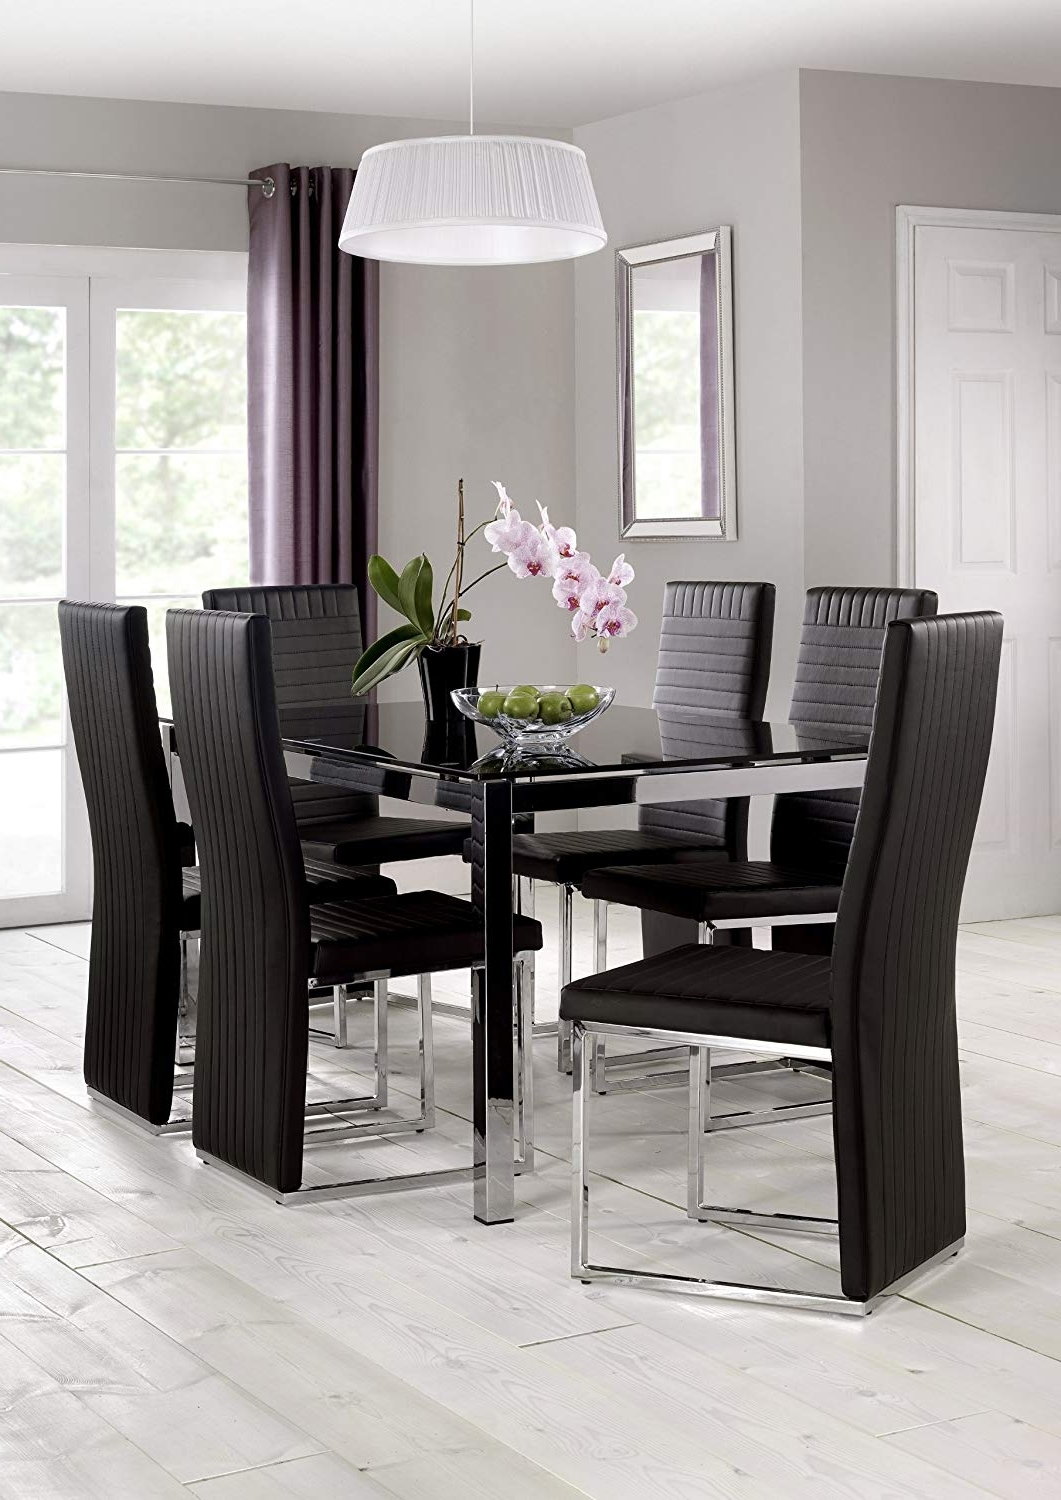 Most Current Glass Dining Tables With 6 Chairs Intended For Julian Bowen Tempo Glass Dining Table, Chrome/black: Amazon.co (View 13 of 25)